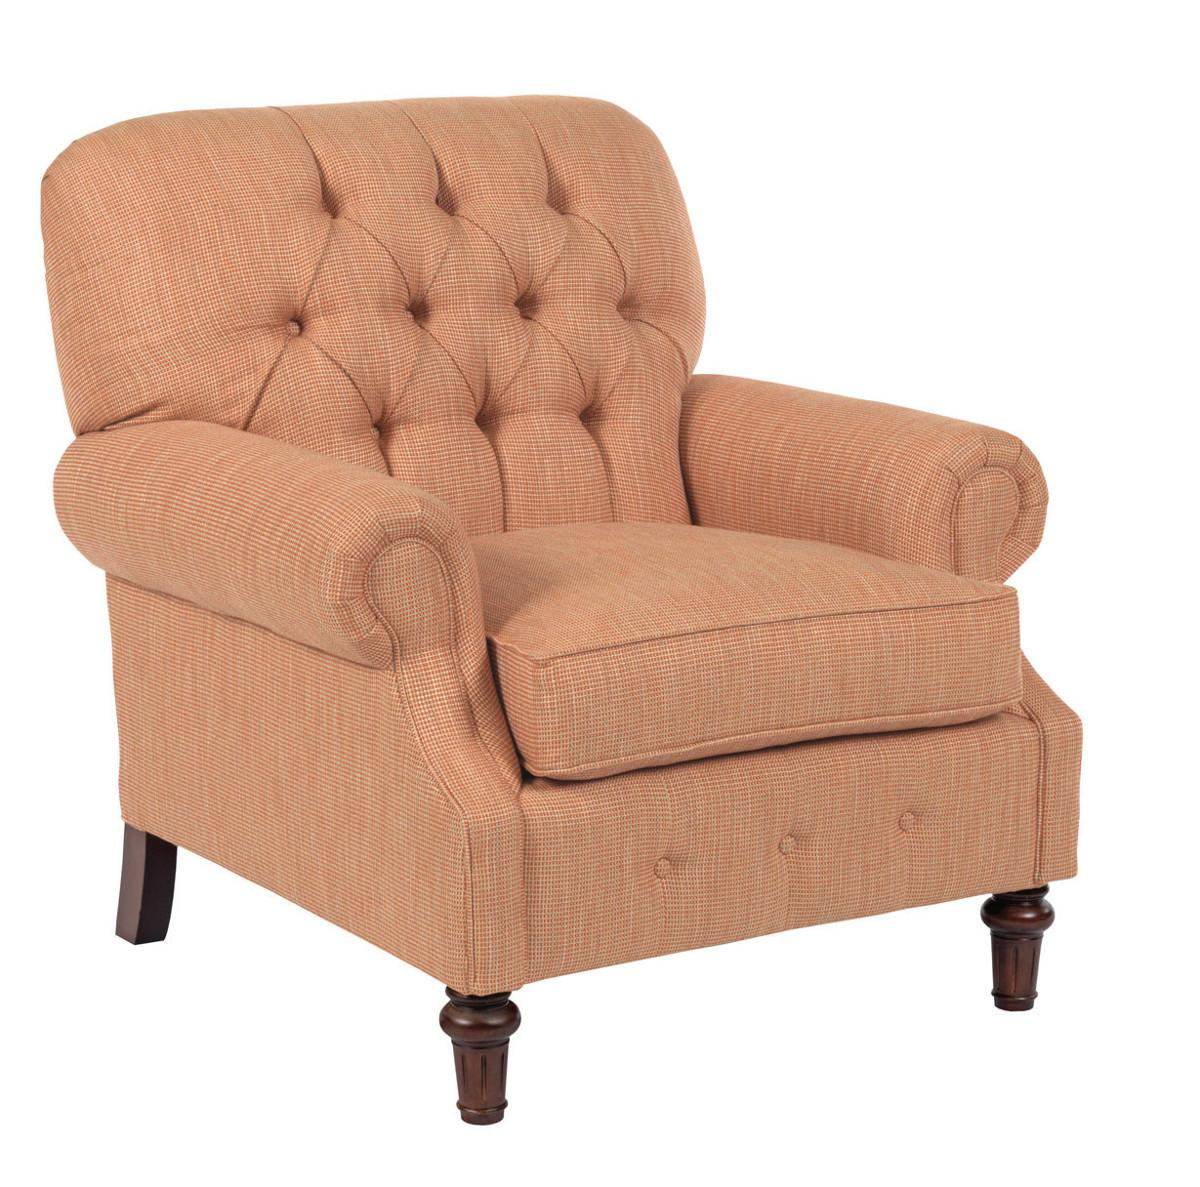 kincaid sofas reviews bagsy sofa furniture berkshire rolled arm chair with button